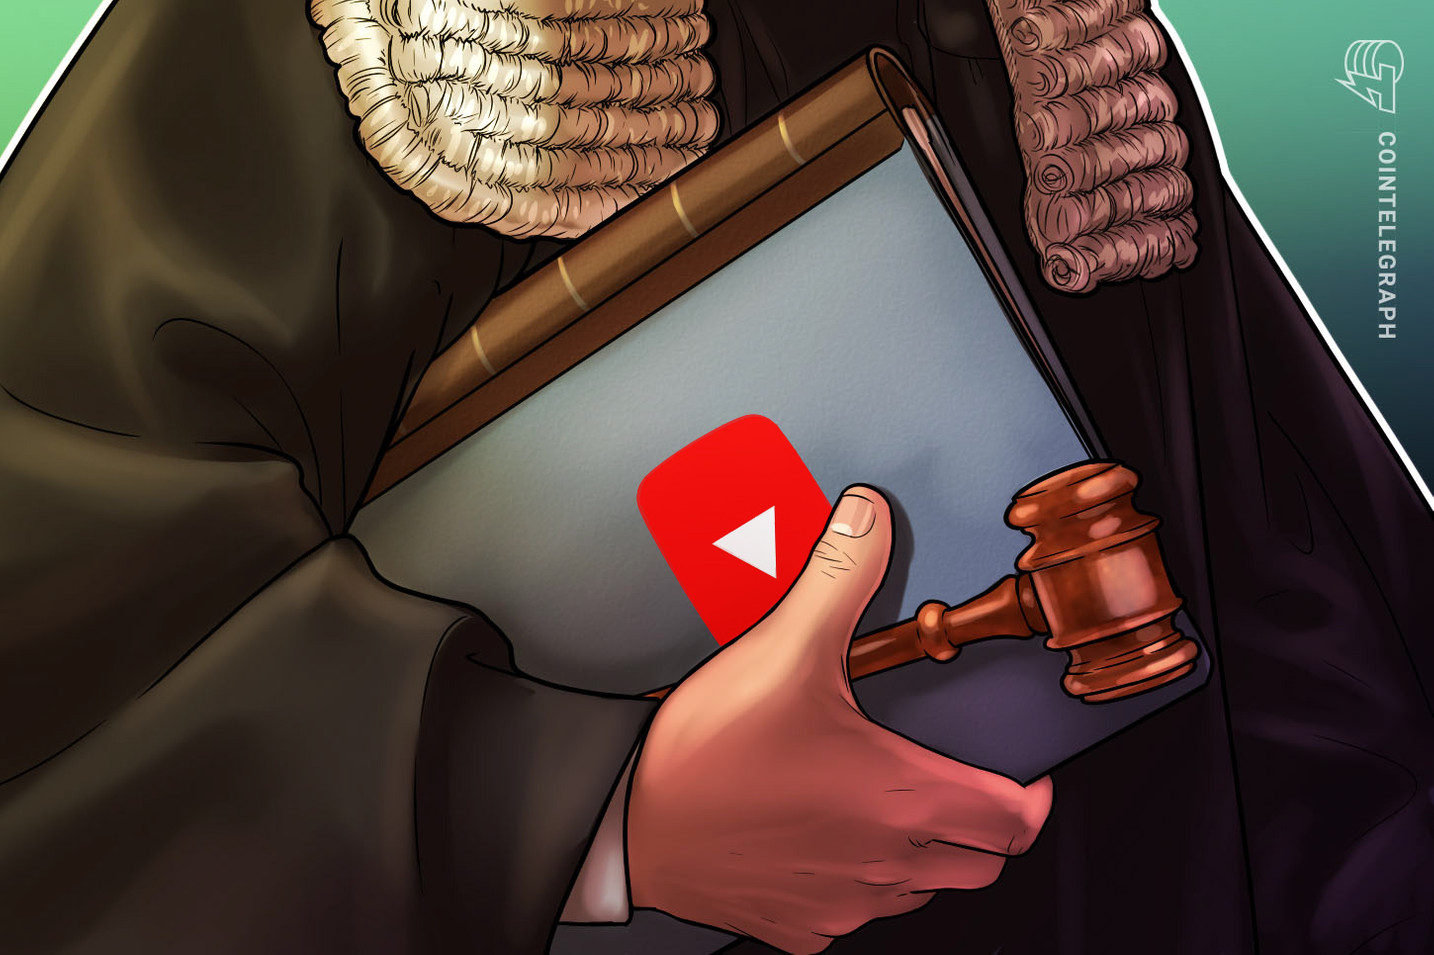 Apple Co-Founder Steve Wozniak Sues YouTube Over Crypto Scams